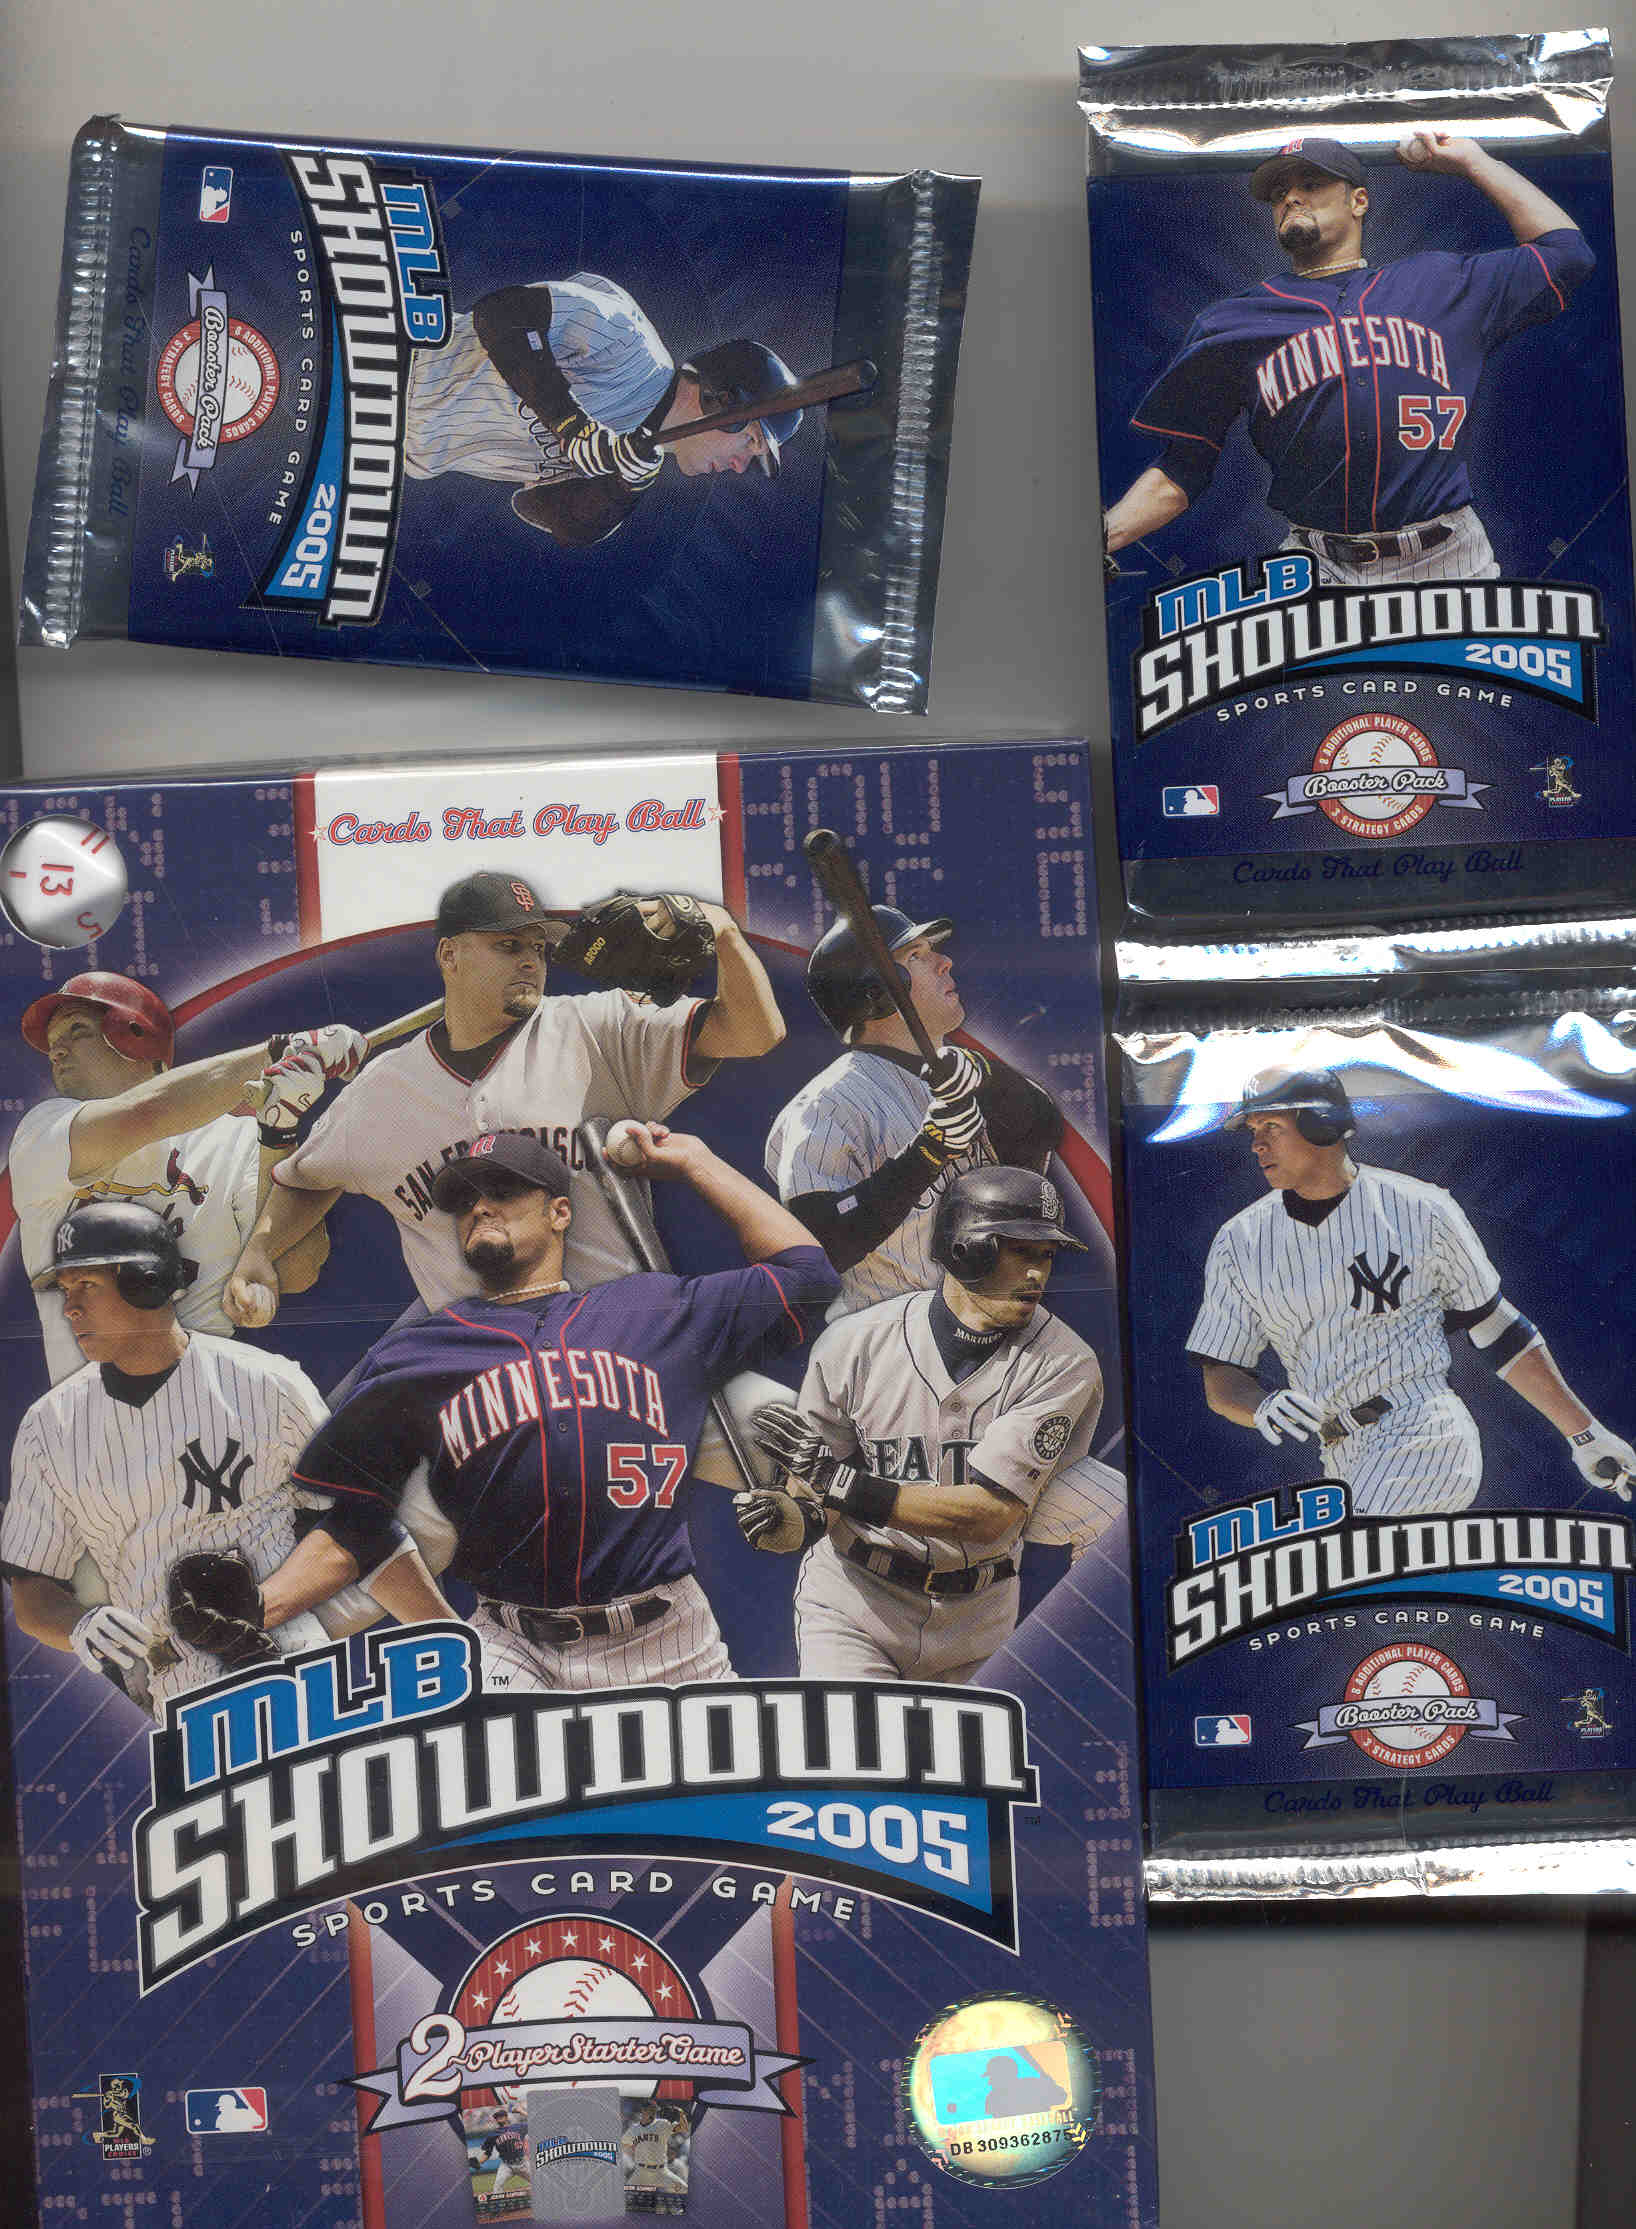 2005 MLB Showdown  2 Player Starter Game Arod Rolen Santana Helton Ichiro Schmidt